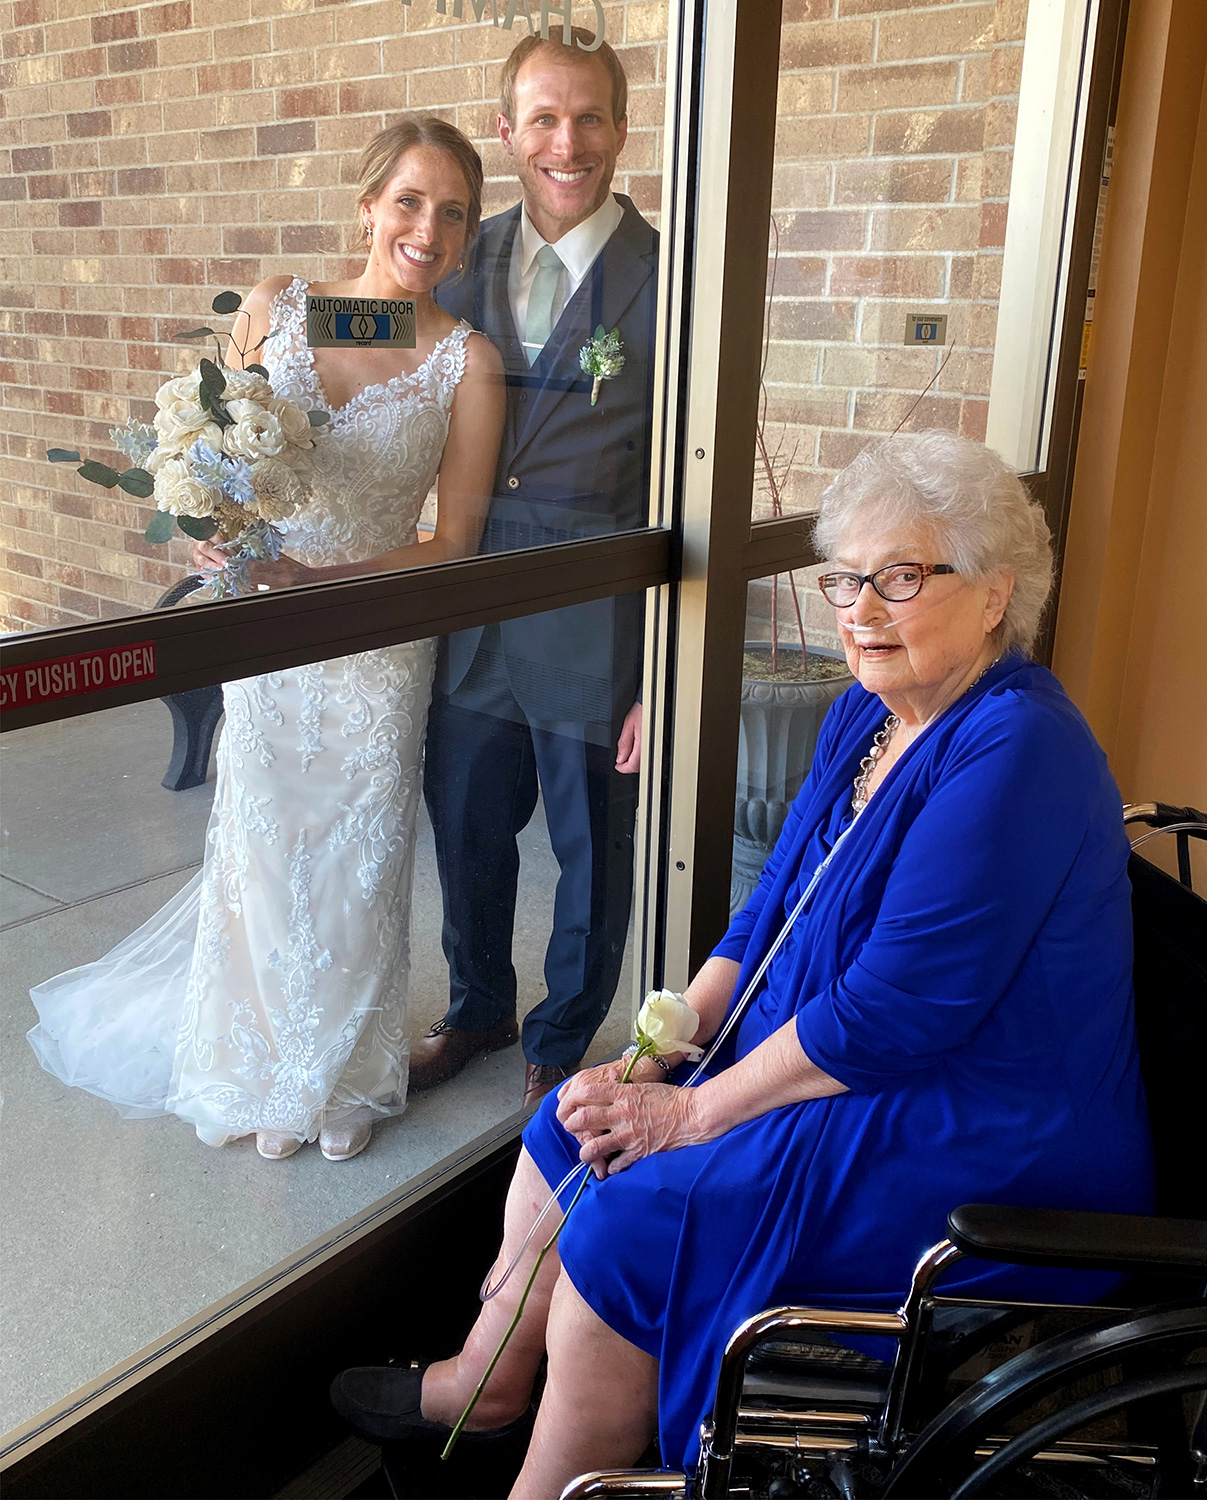 """Rapid Recovery & Aquatic Center patient, """"Grandma"""" Janis joins Granddaughter Shauna on her wedding day, despite COVID-19 isolation precautions."""